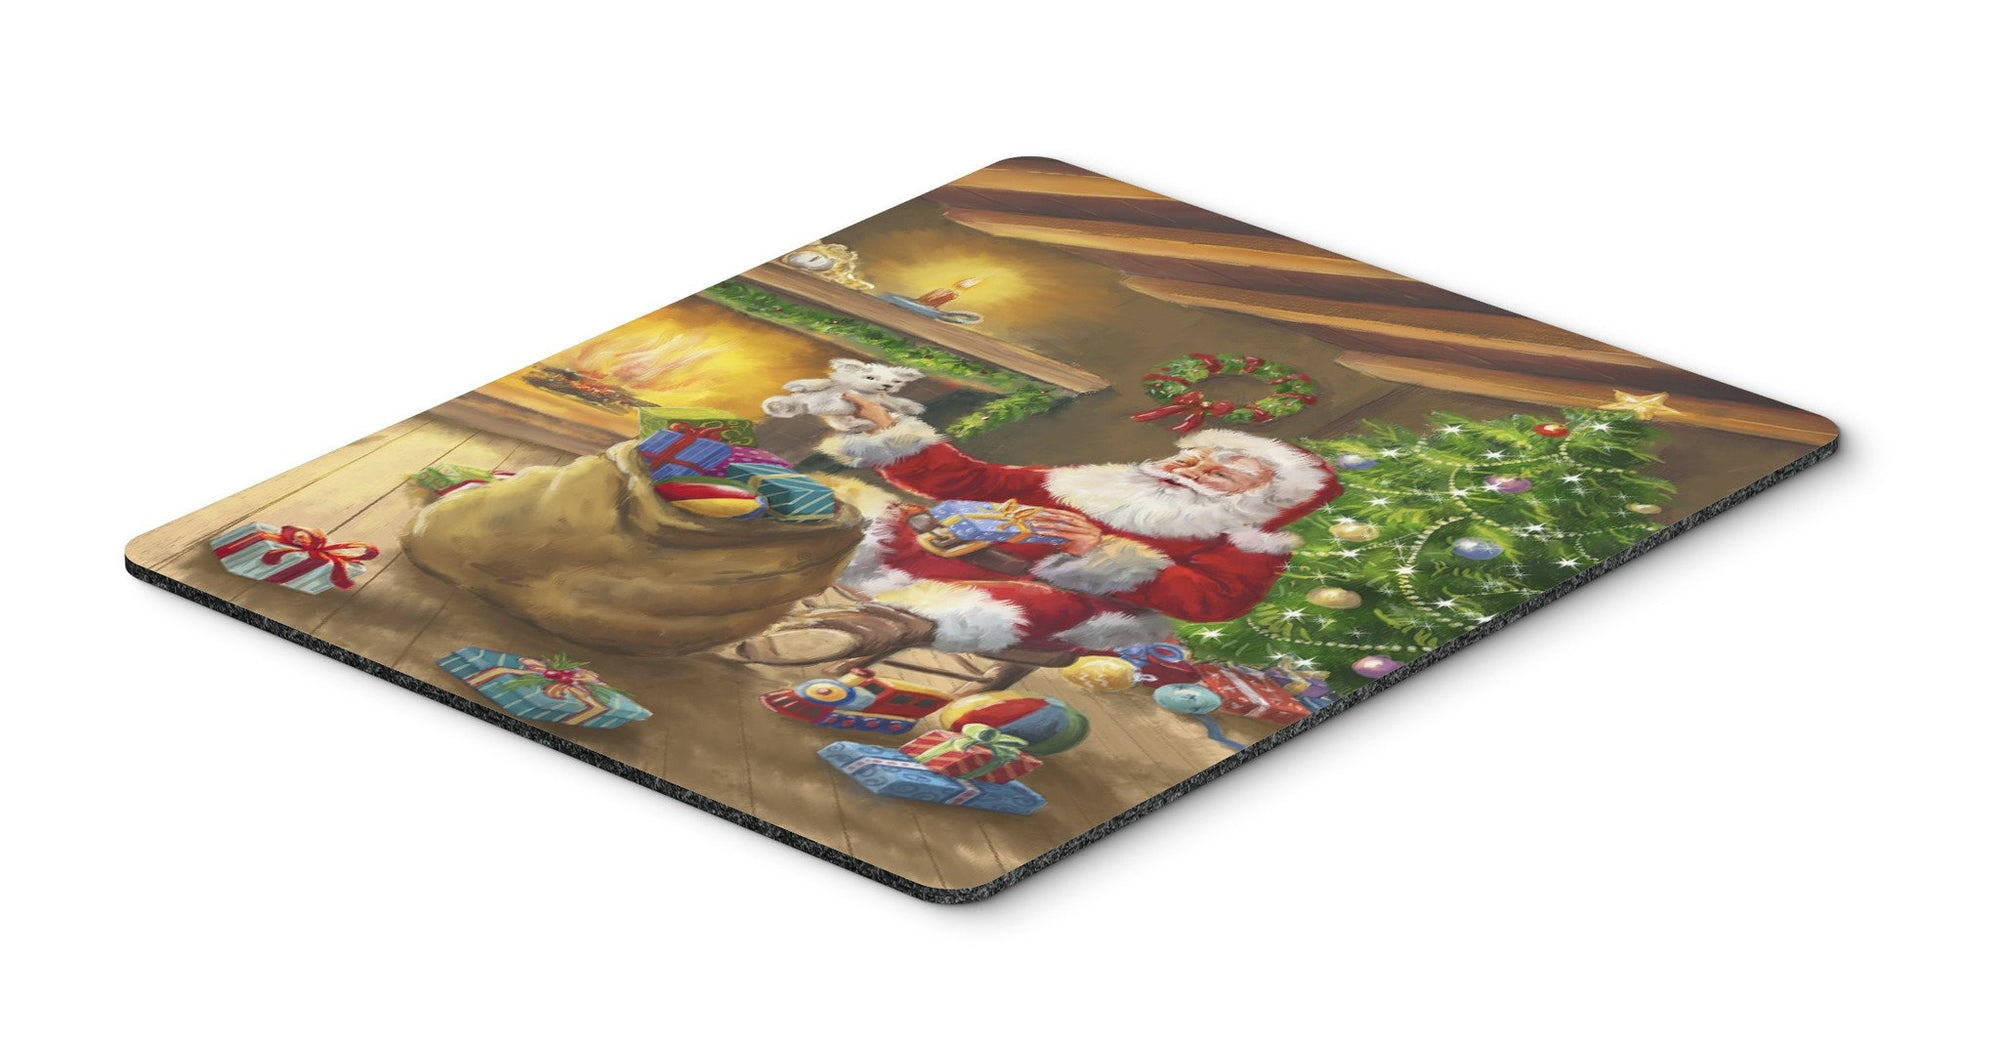 Christmas Santa Claus Unloading Toys Mouse Pad, Hot Pad or Trivet APH5793MP by Caroline's Treasures